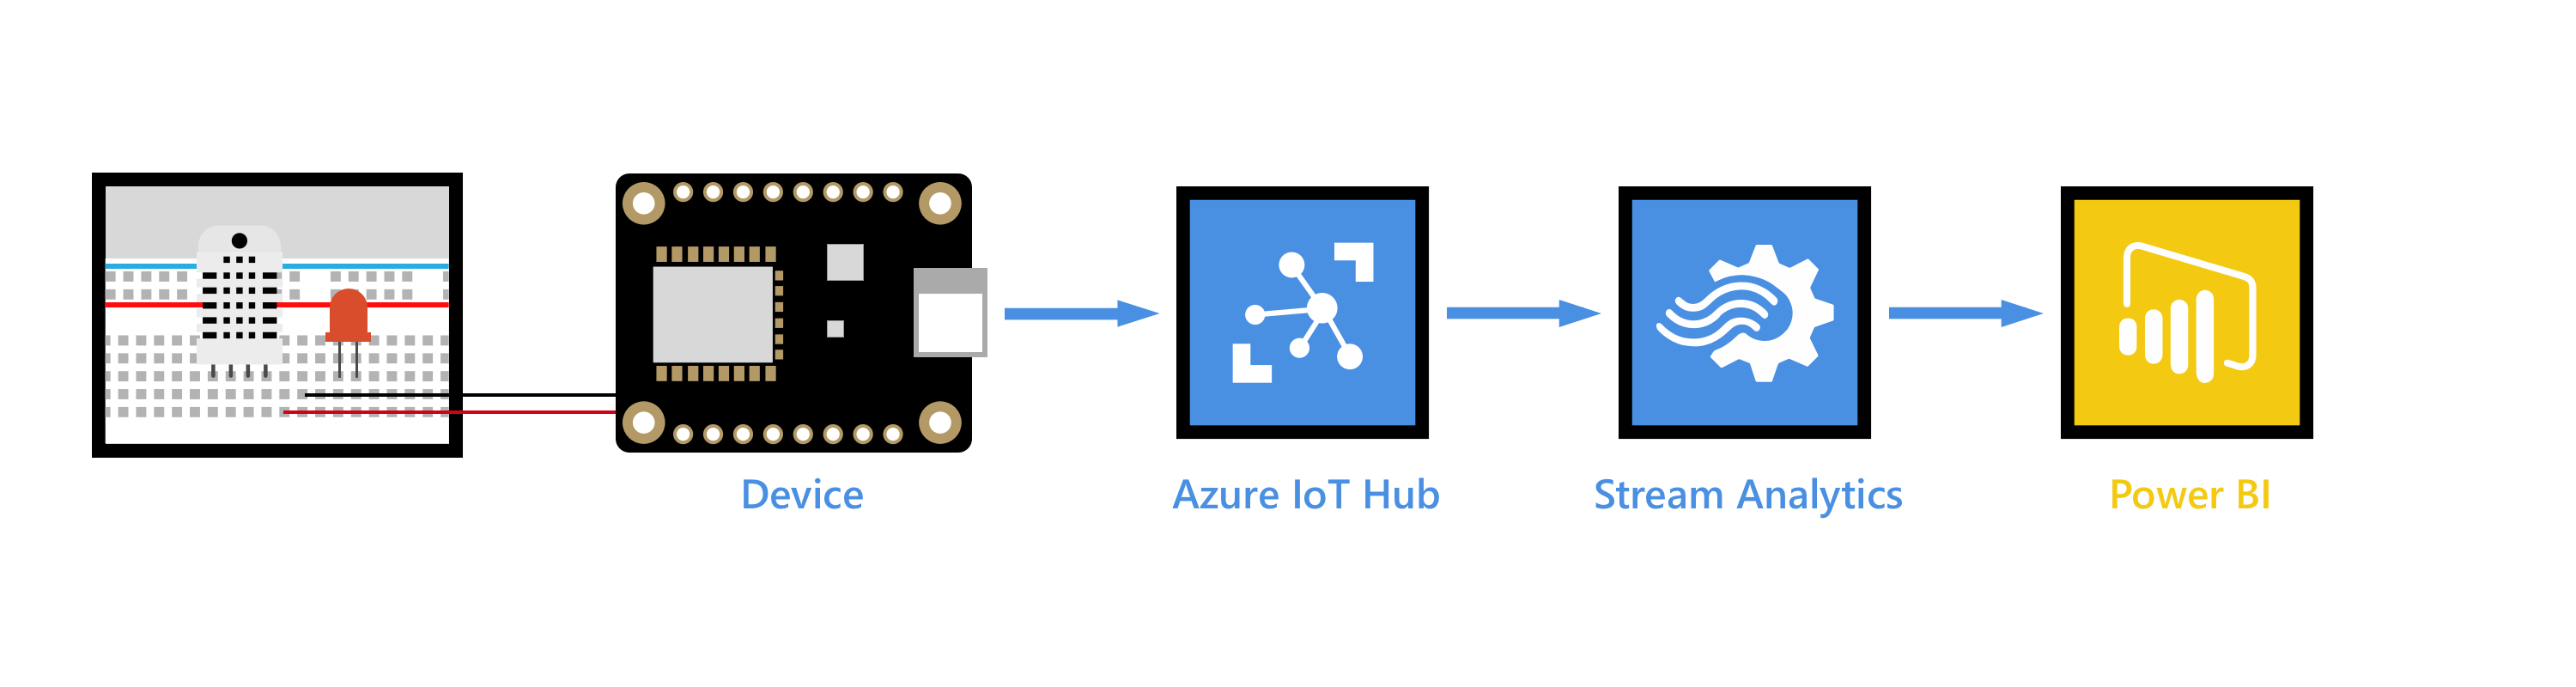 Real-time data visualization of sensor data from Azure IoT Hub